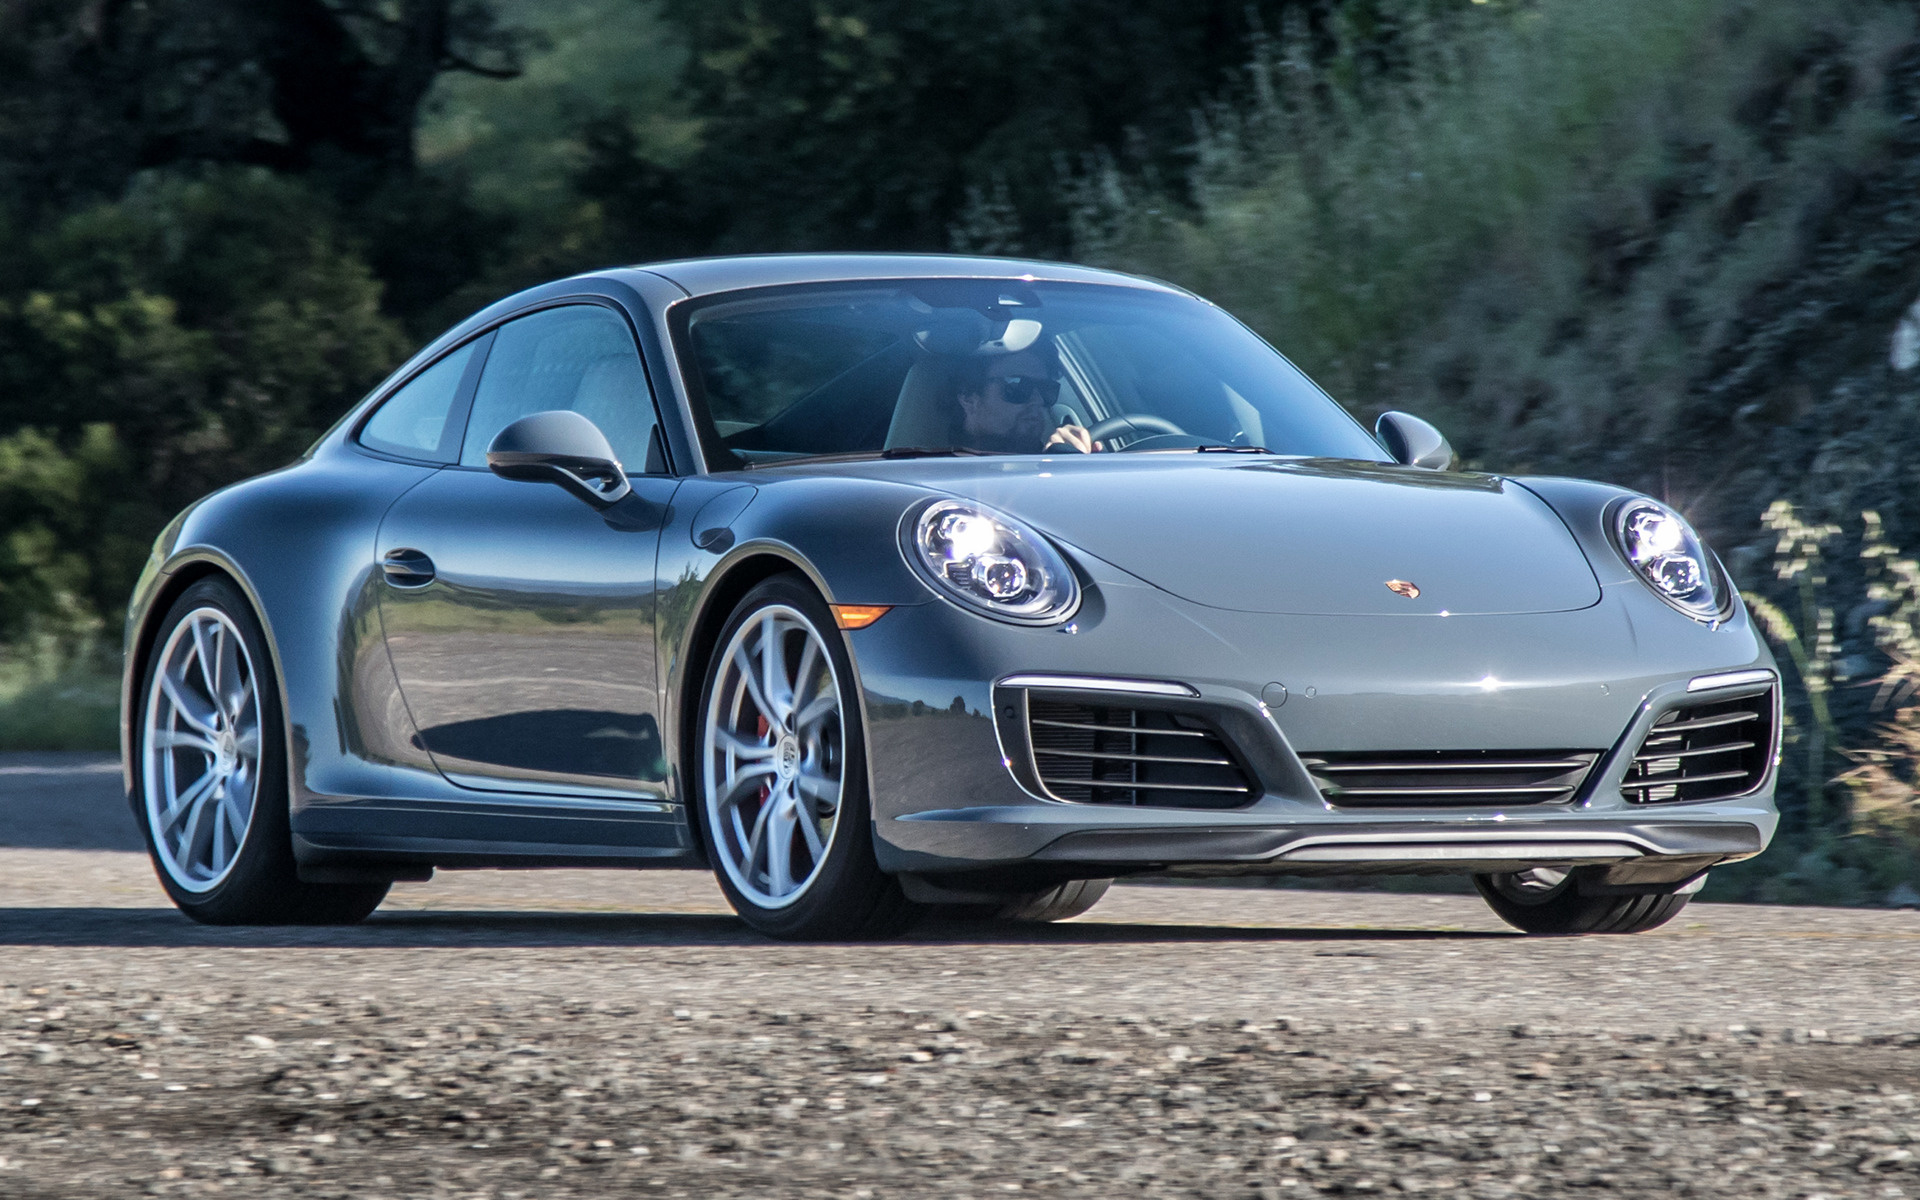 Hd Car Wallpapers Subaru 2017 Porsche 911 Carrera S Us Wallpapers And Hd Images